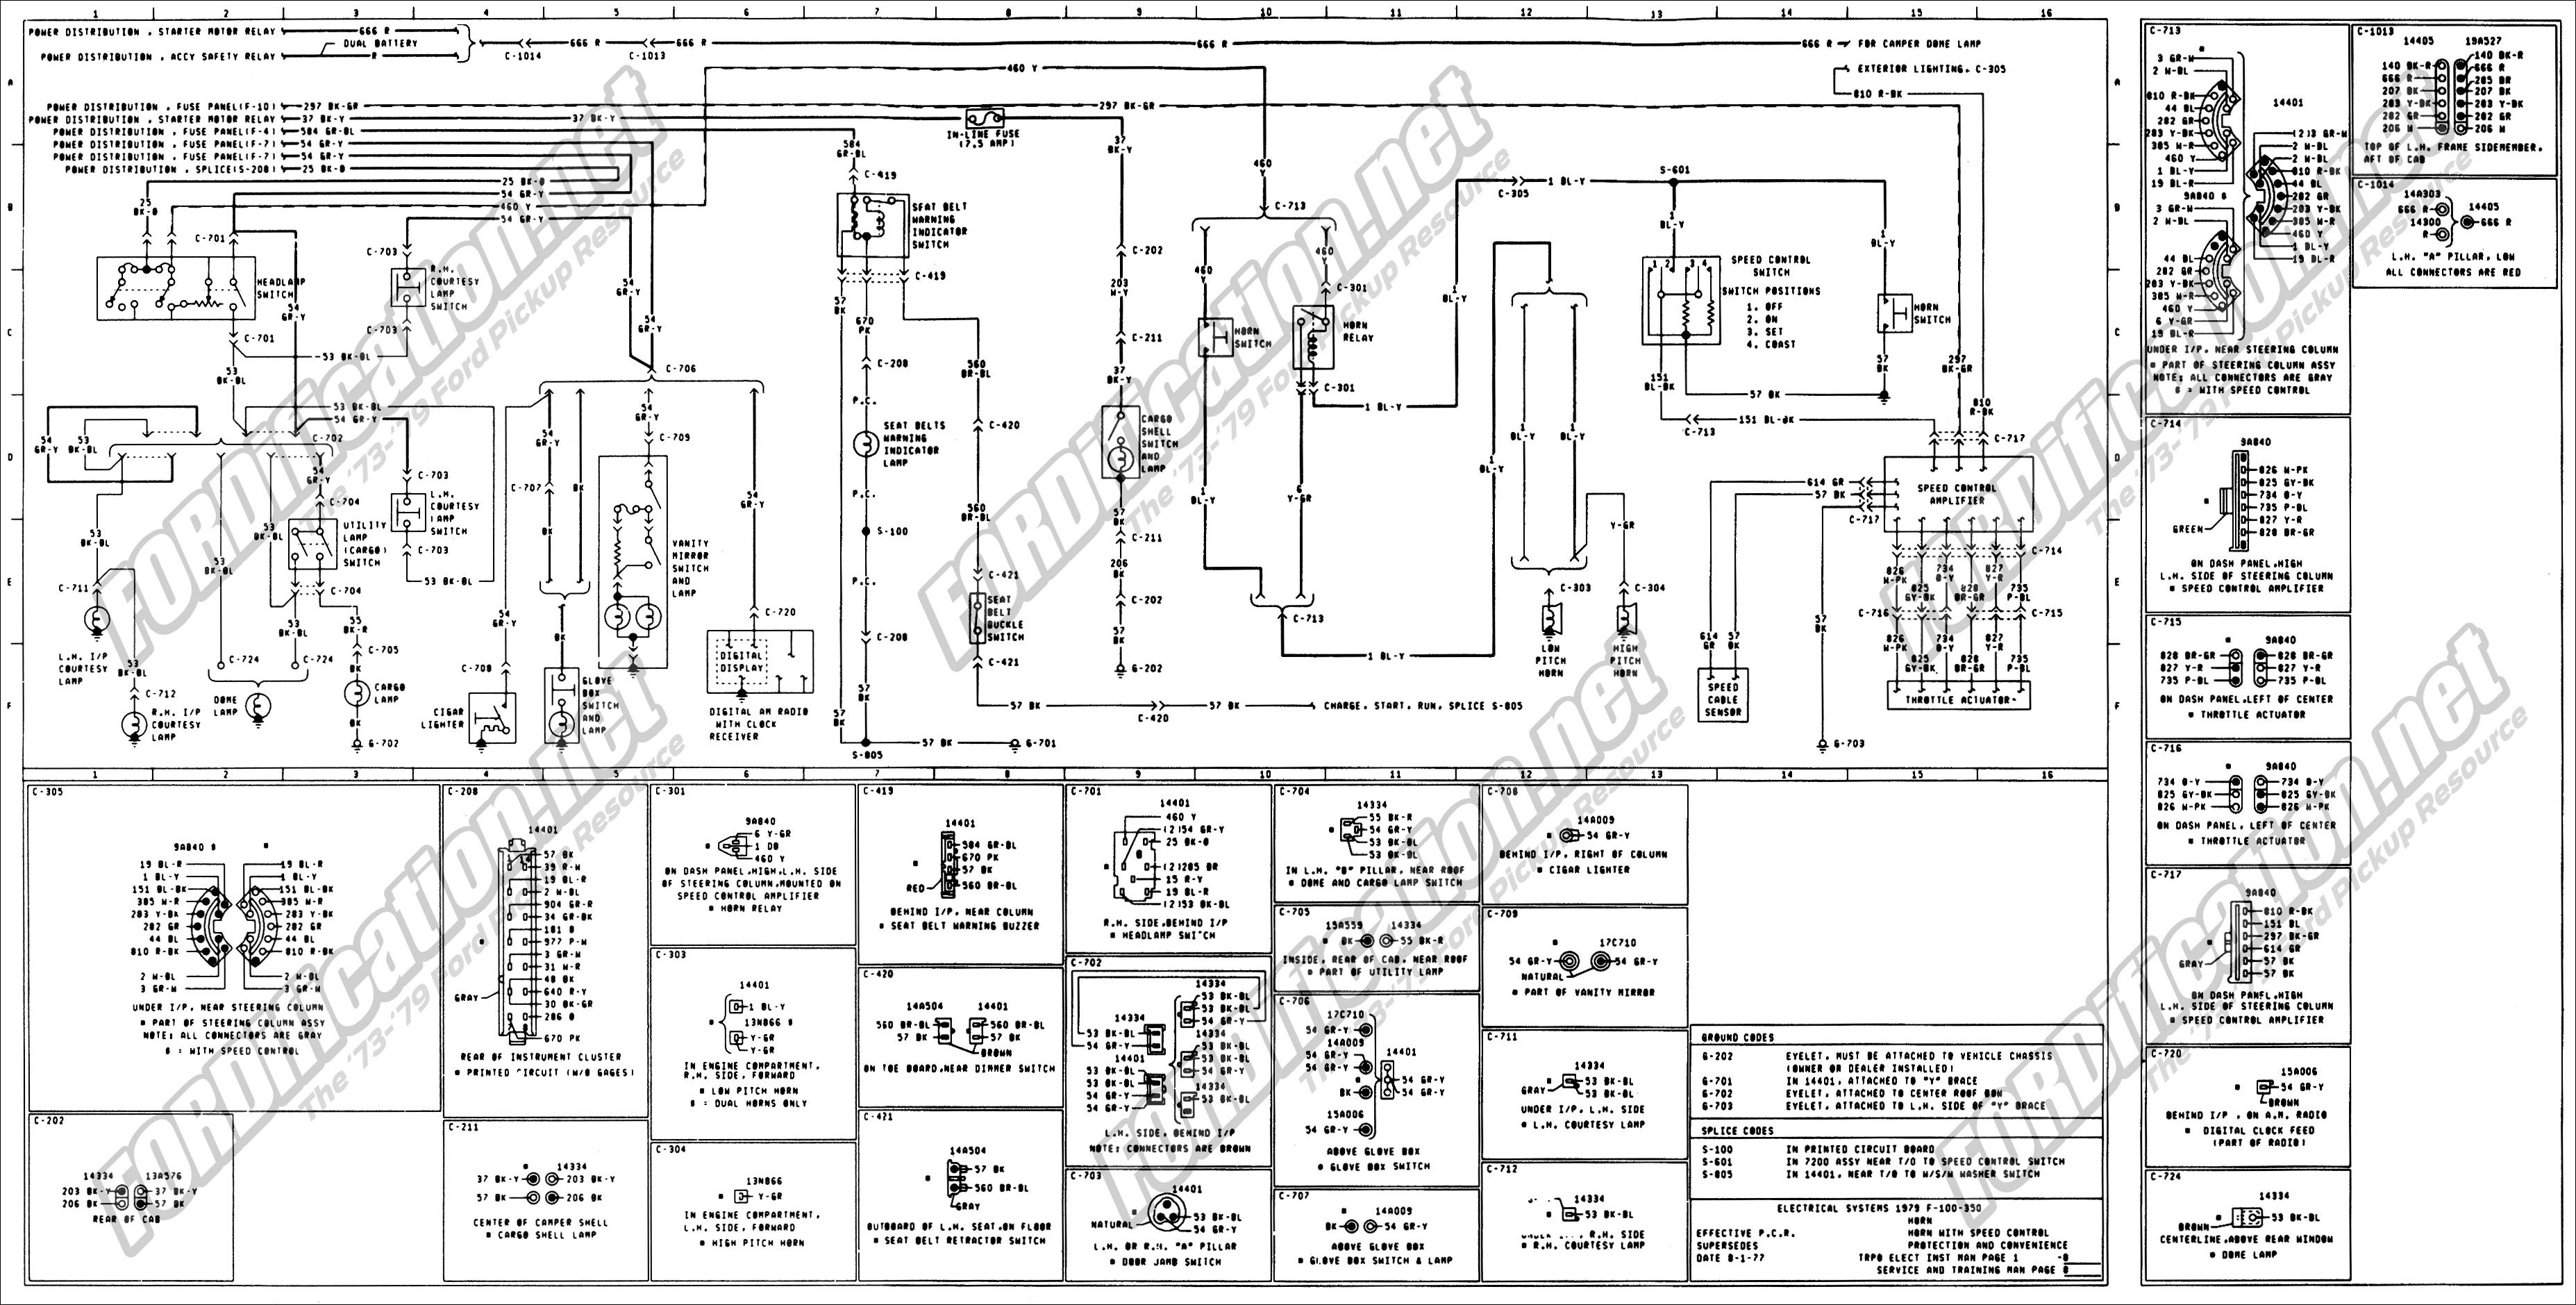 1976 Chevy Truck Wiring Diagram 57 65 Chevy Wiring